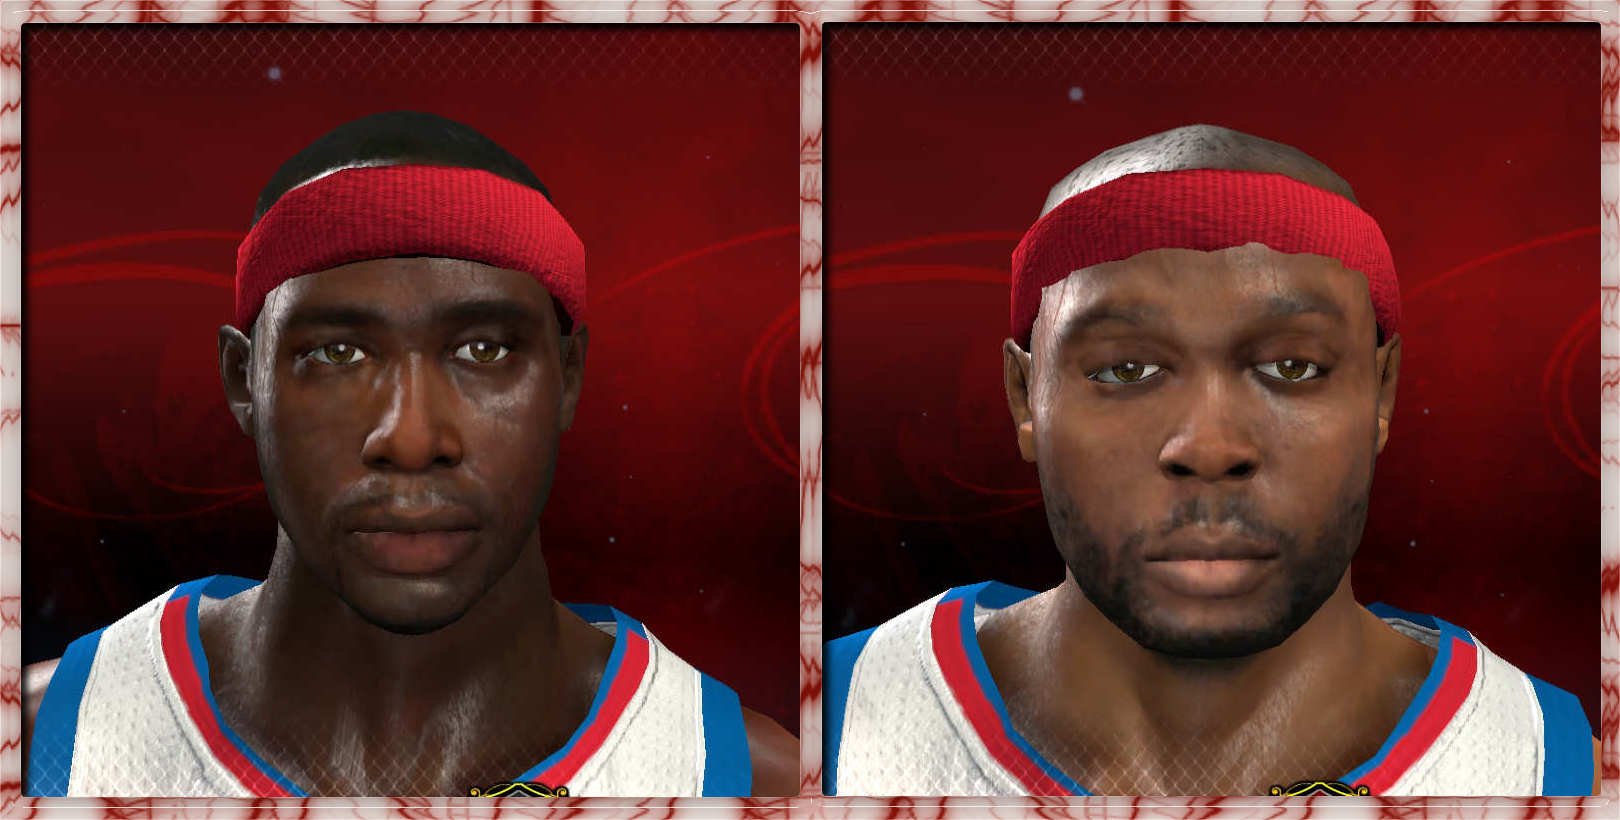 2K11 to 2K13 Conversion - Pack 5